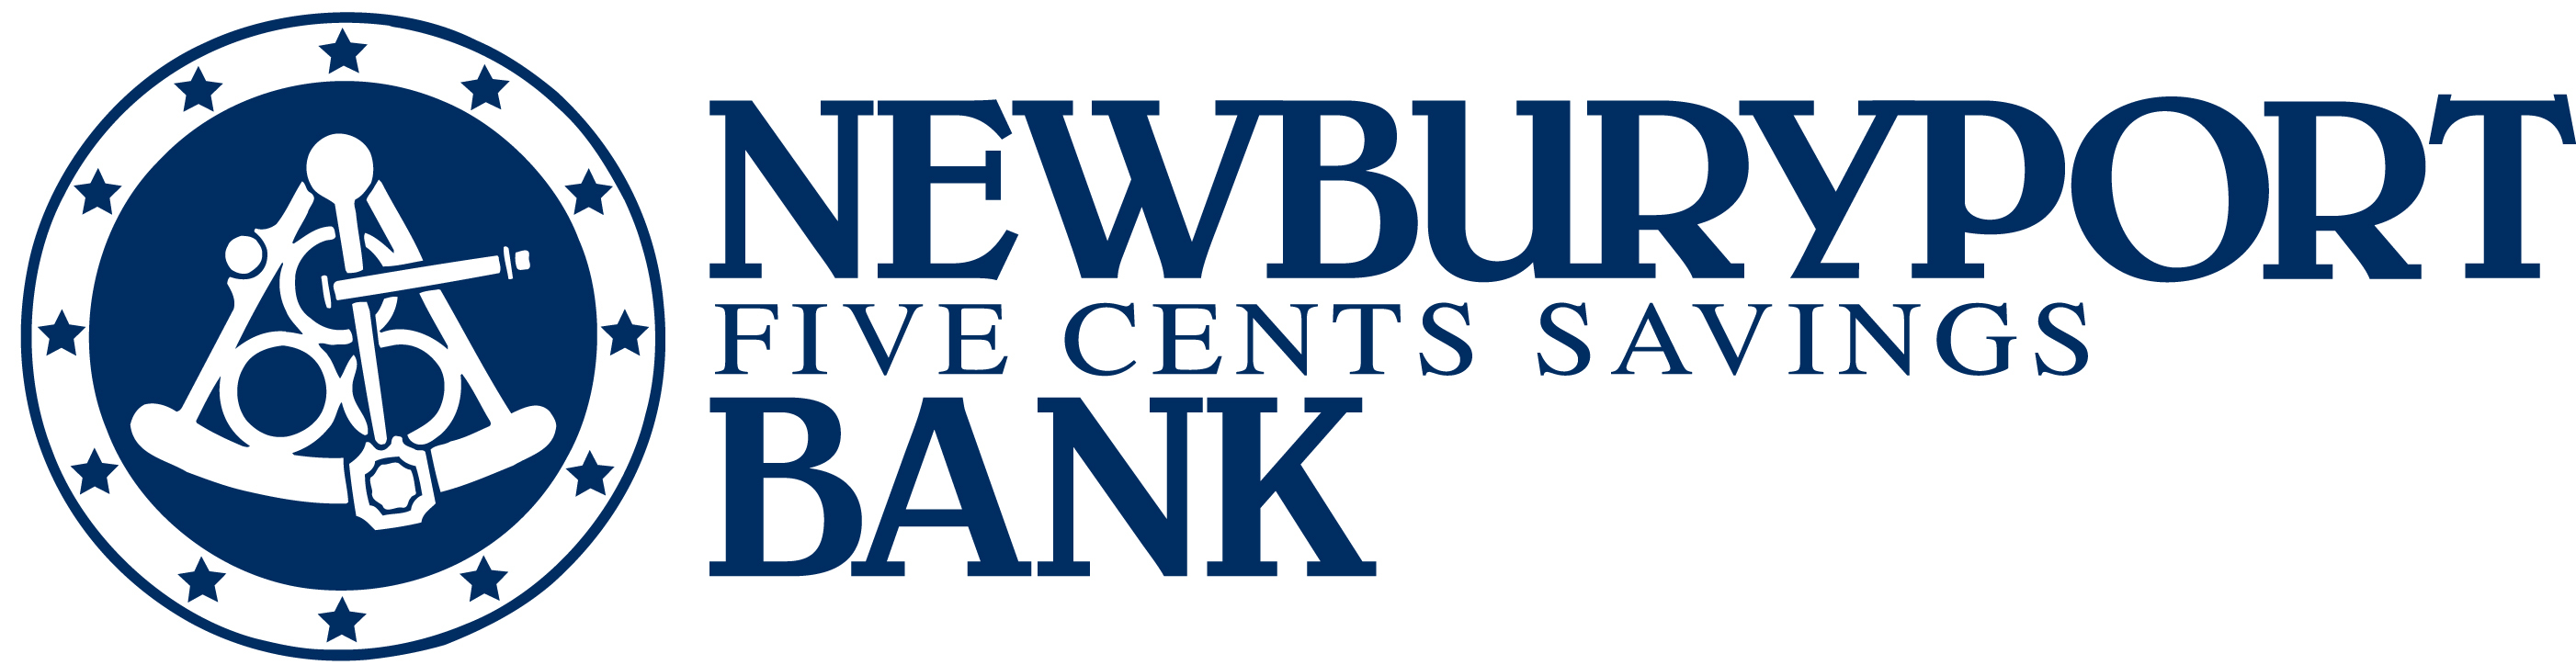 Nbpt Bank Logo And Name 282 12 Star